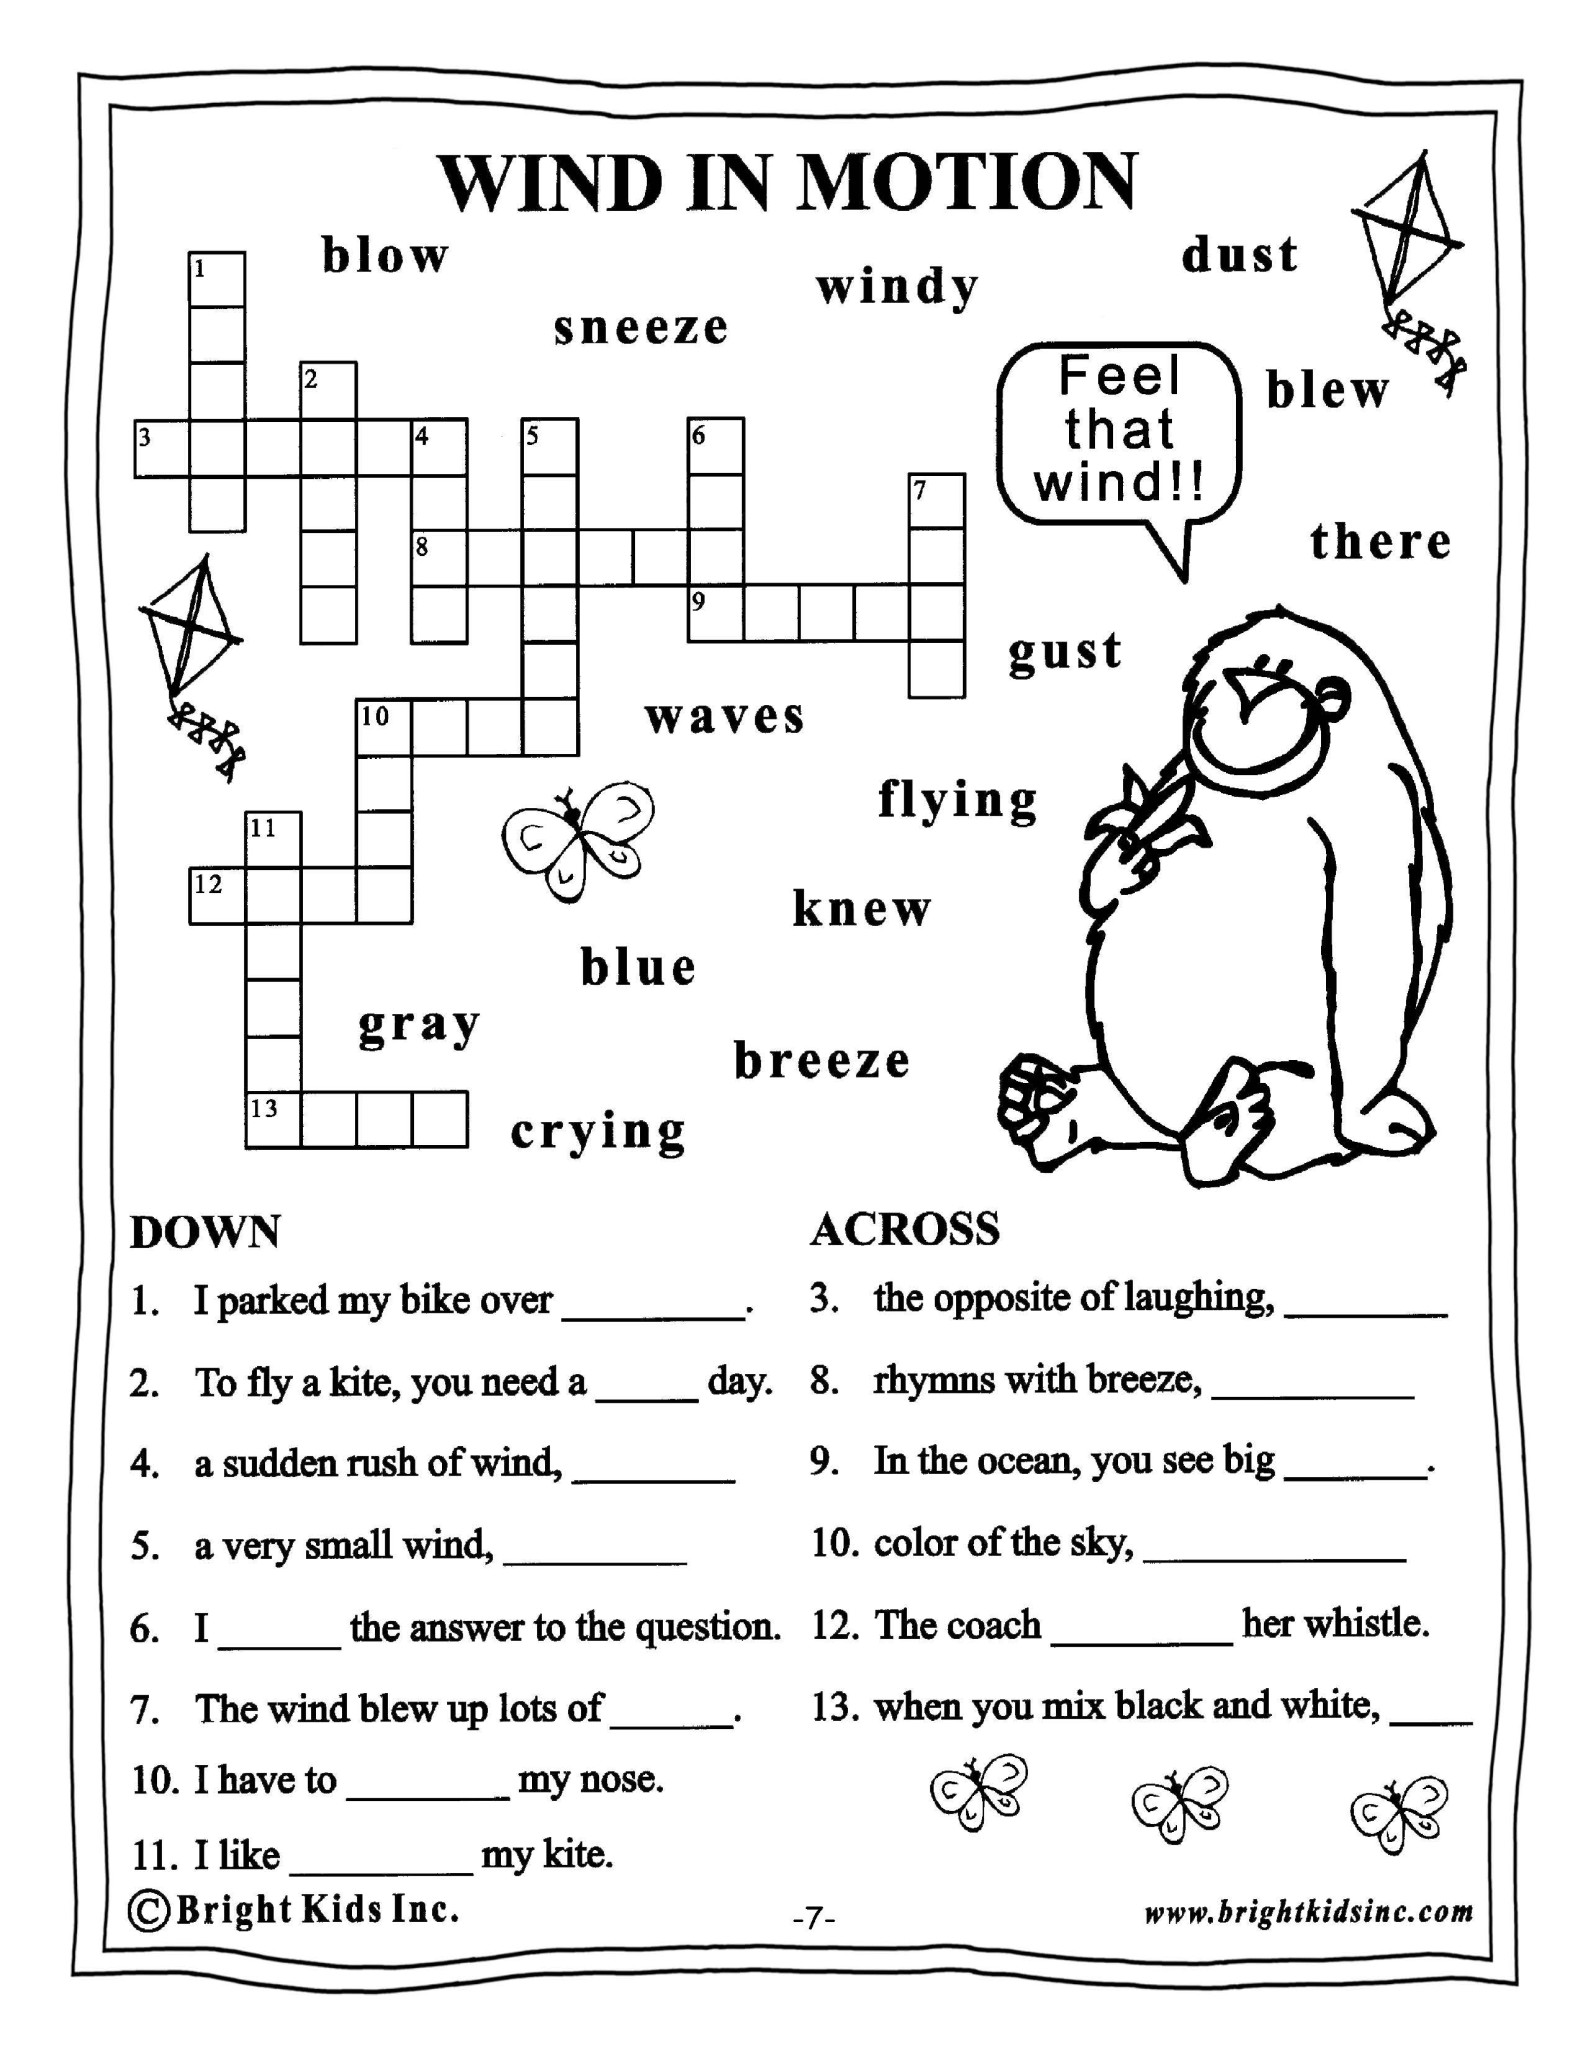 Worksheets Year 3 English Worksheets grade 3 english word power workout